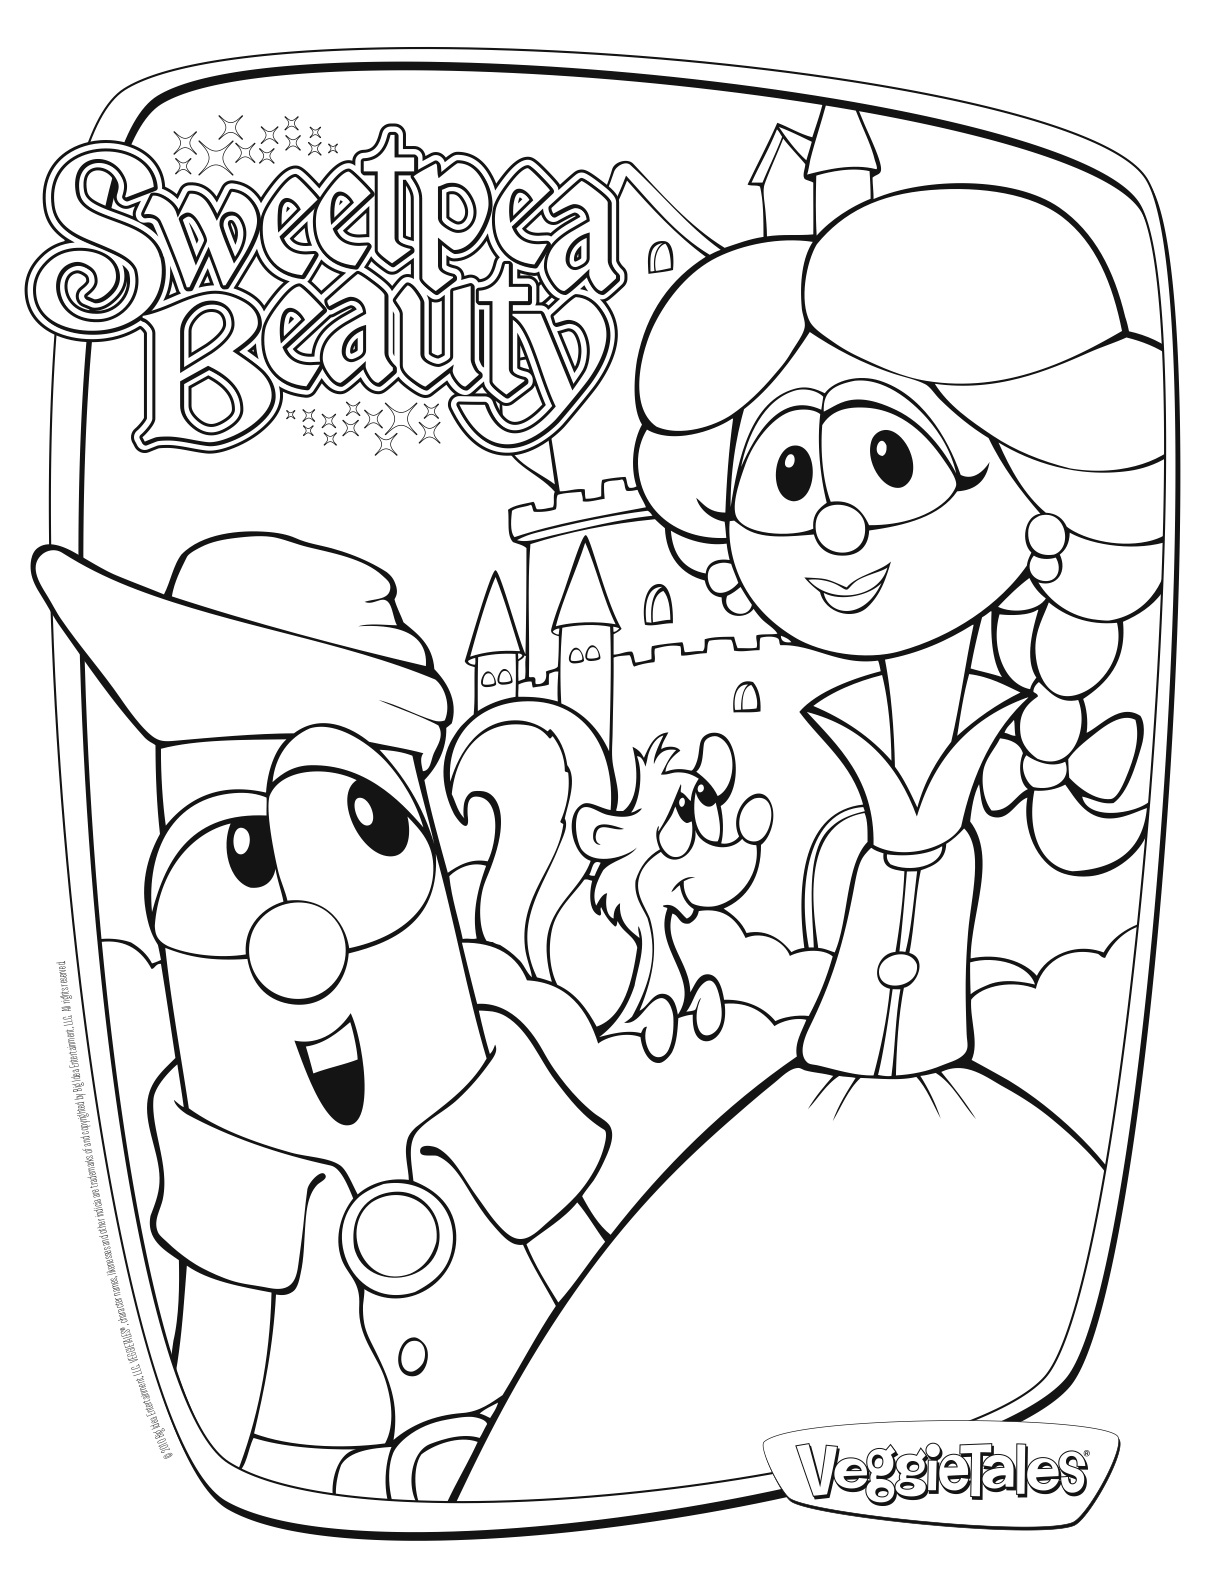 veggietales coloring sheets veggie tales coloring pages download and print for free coloring veggietales sheets